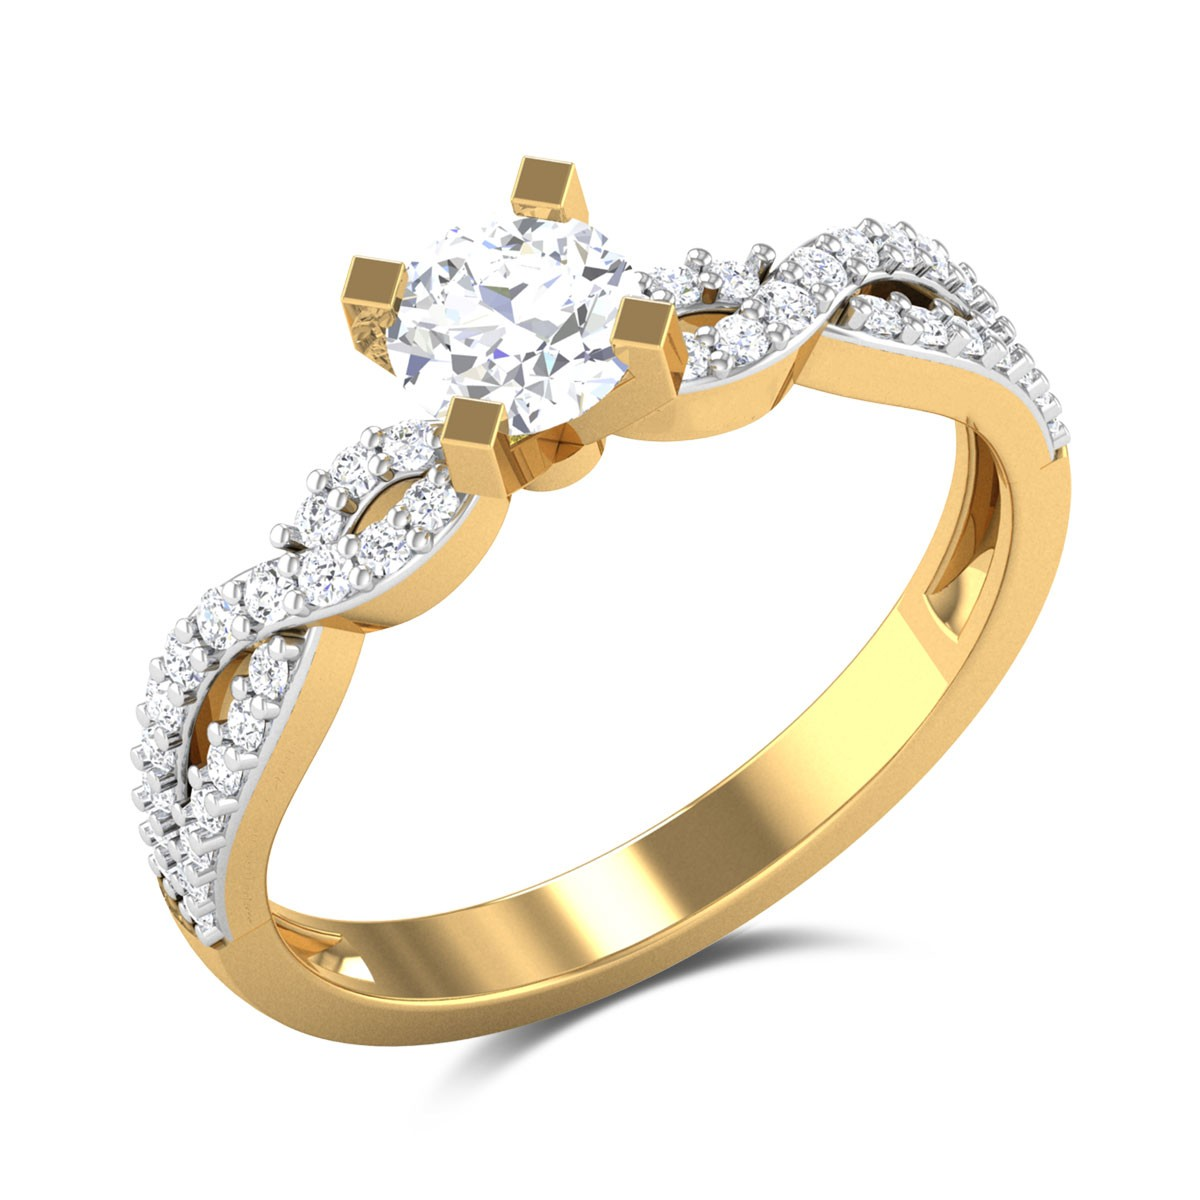 Dancing Flash Solitaire Ring